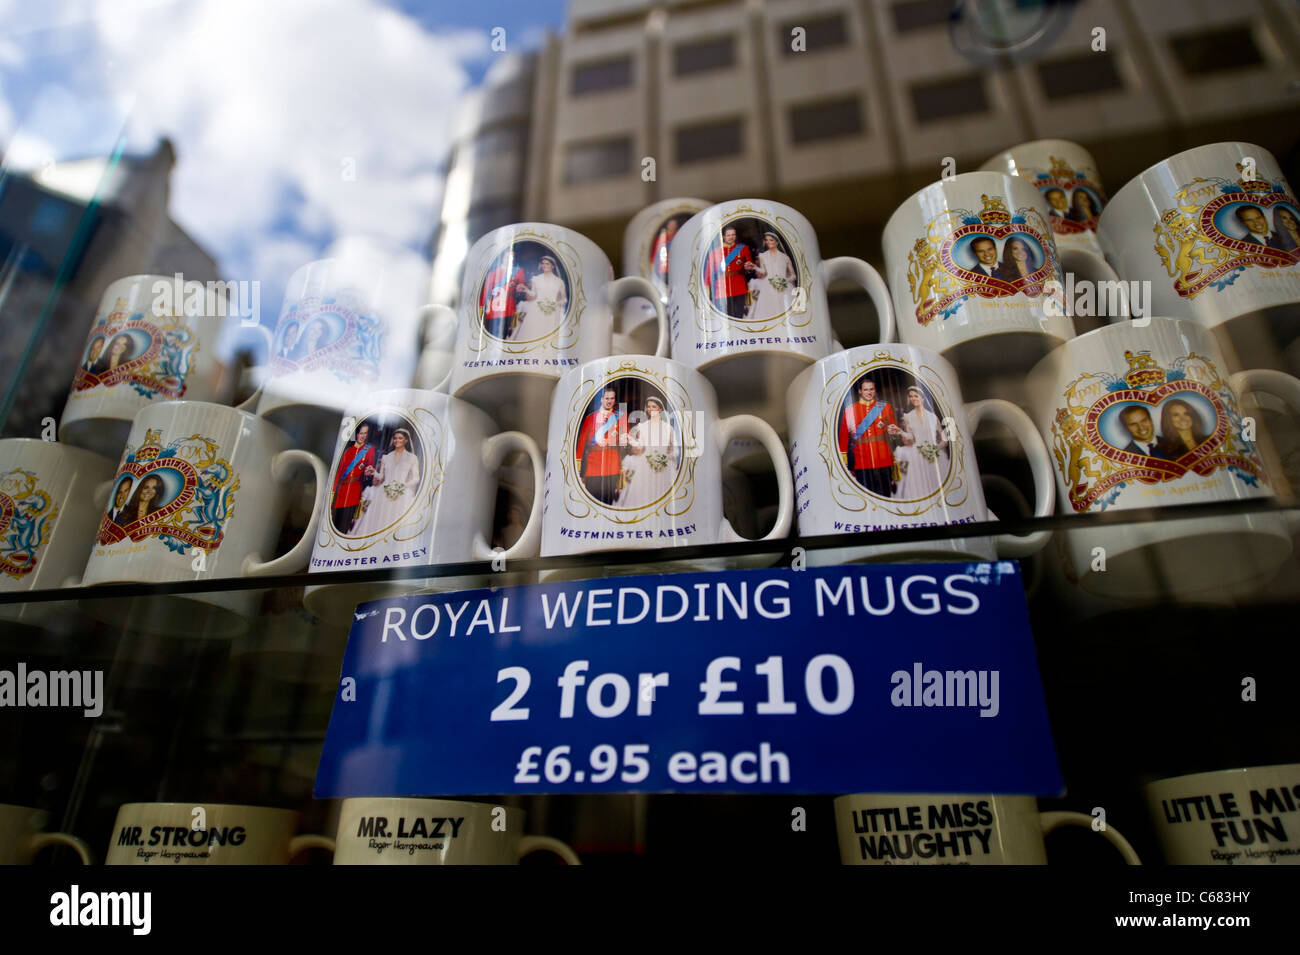 Royal wedding souvenirs still for sale at discount in a London shop window months after the wedding. - Stock Image